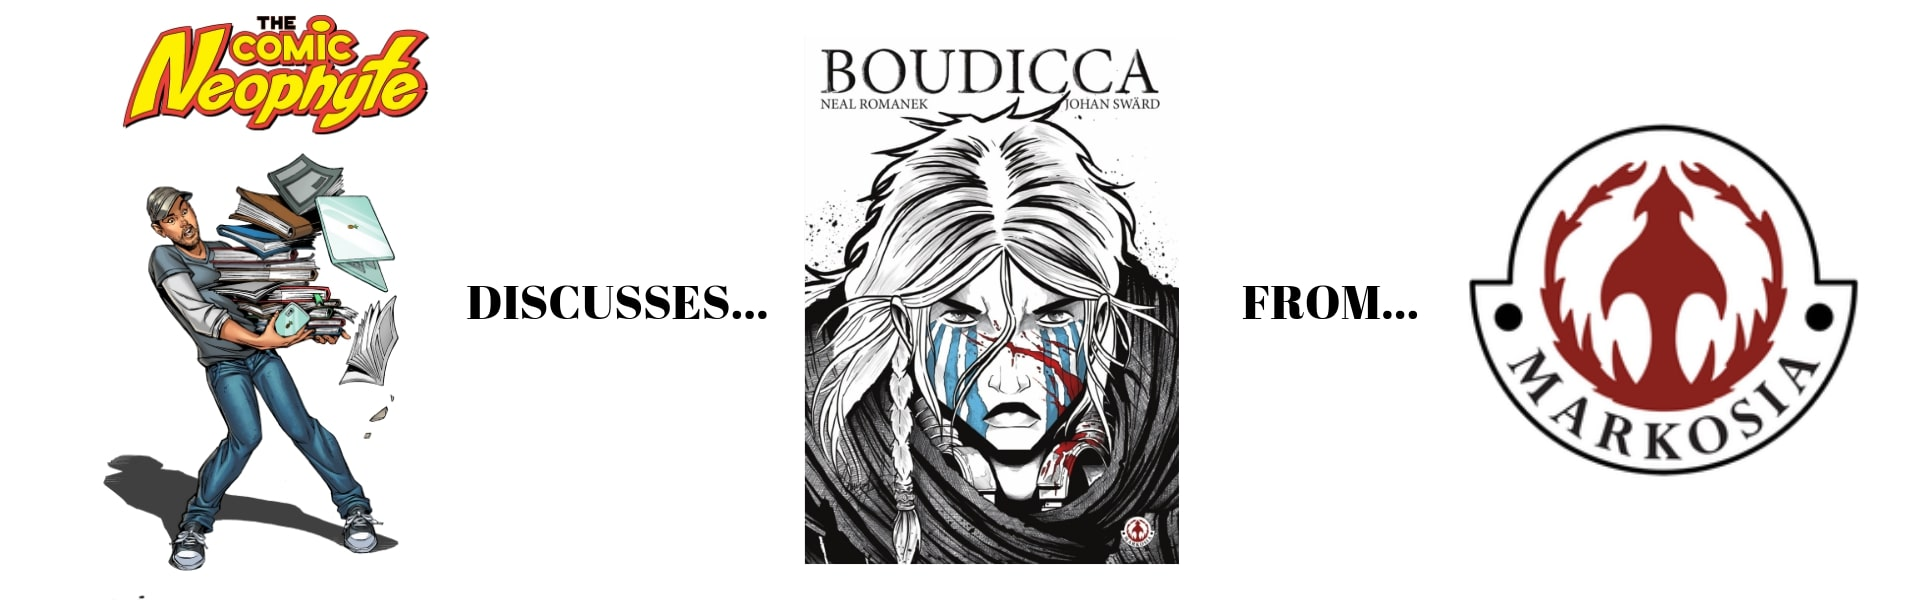 Comic Neophyte: Boudicca from Markosia